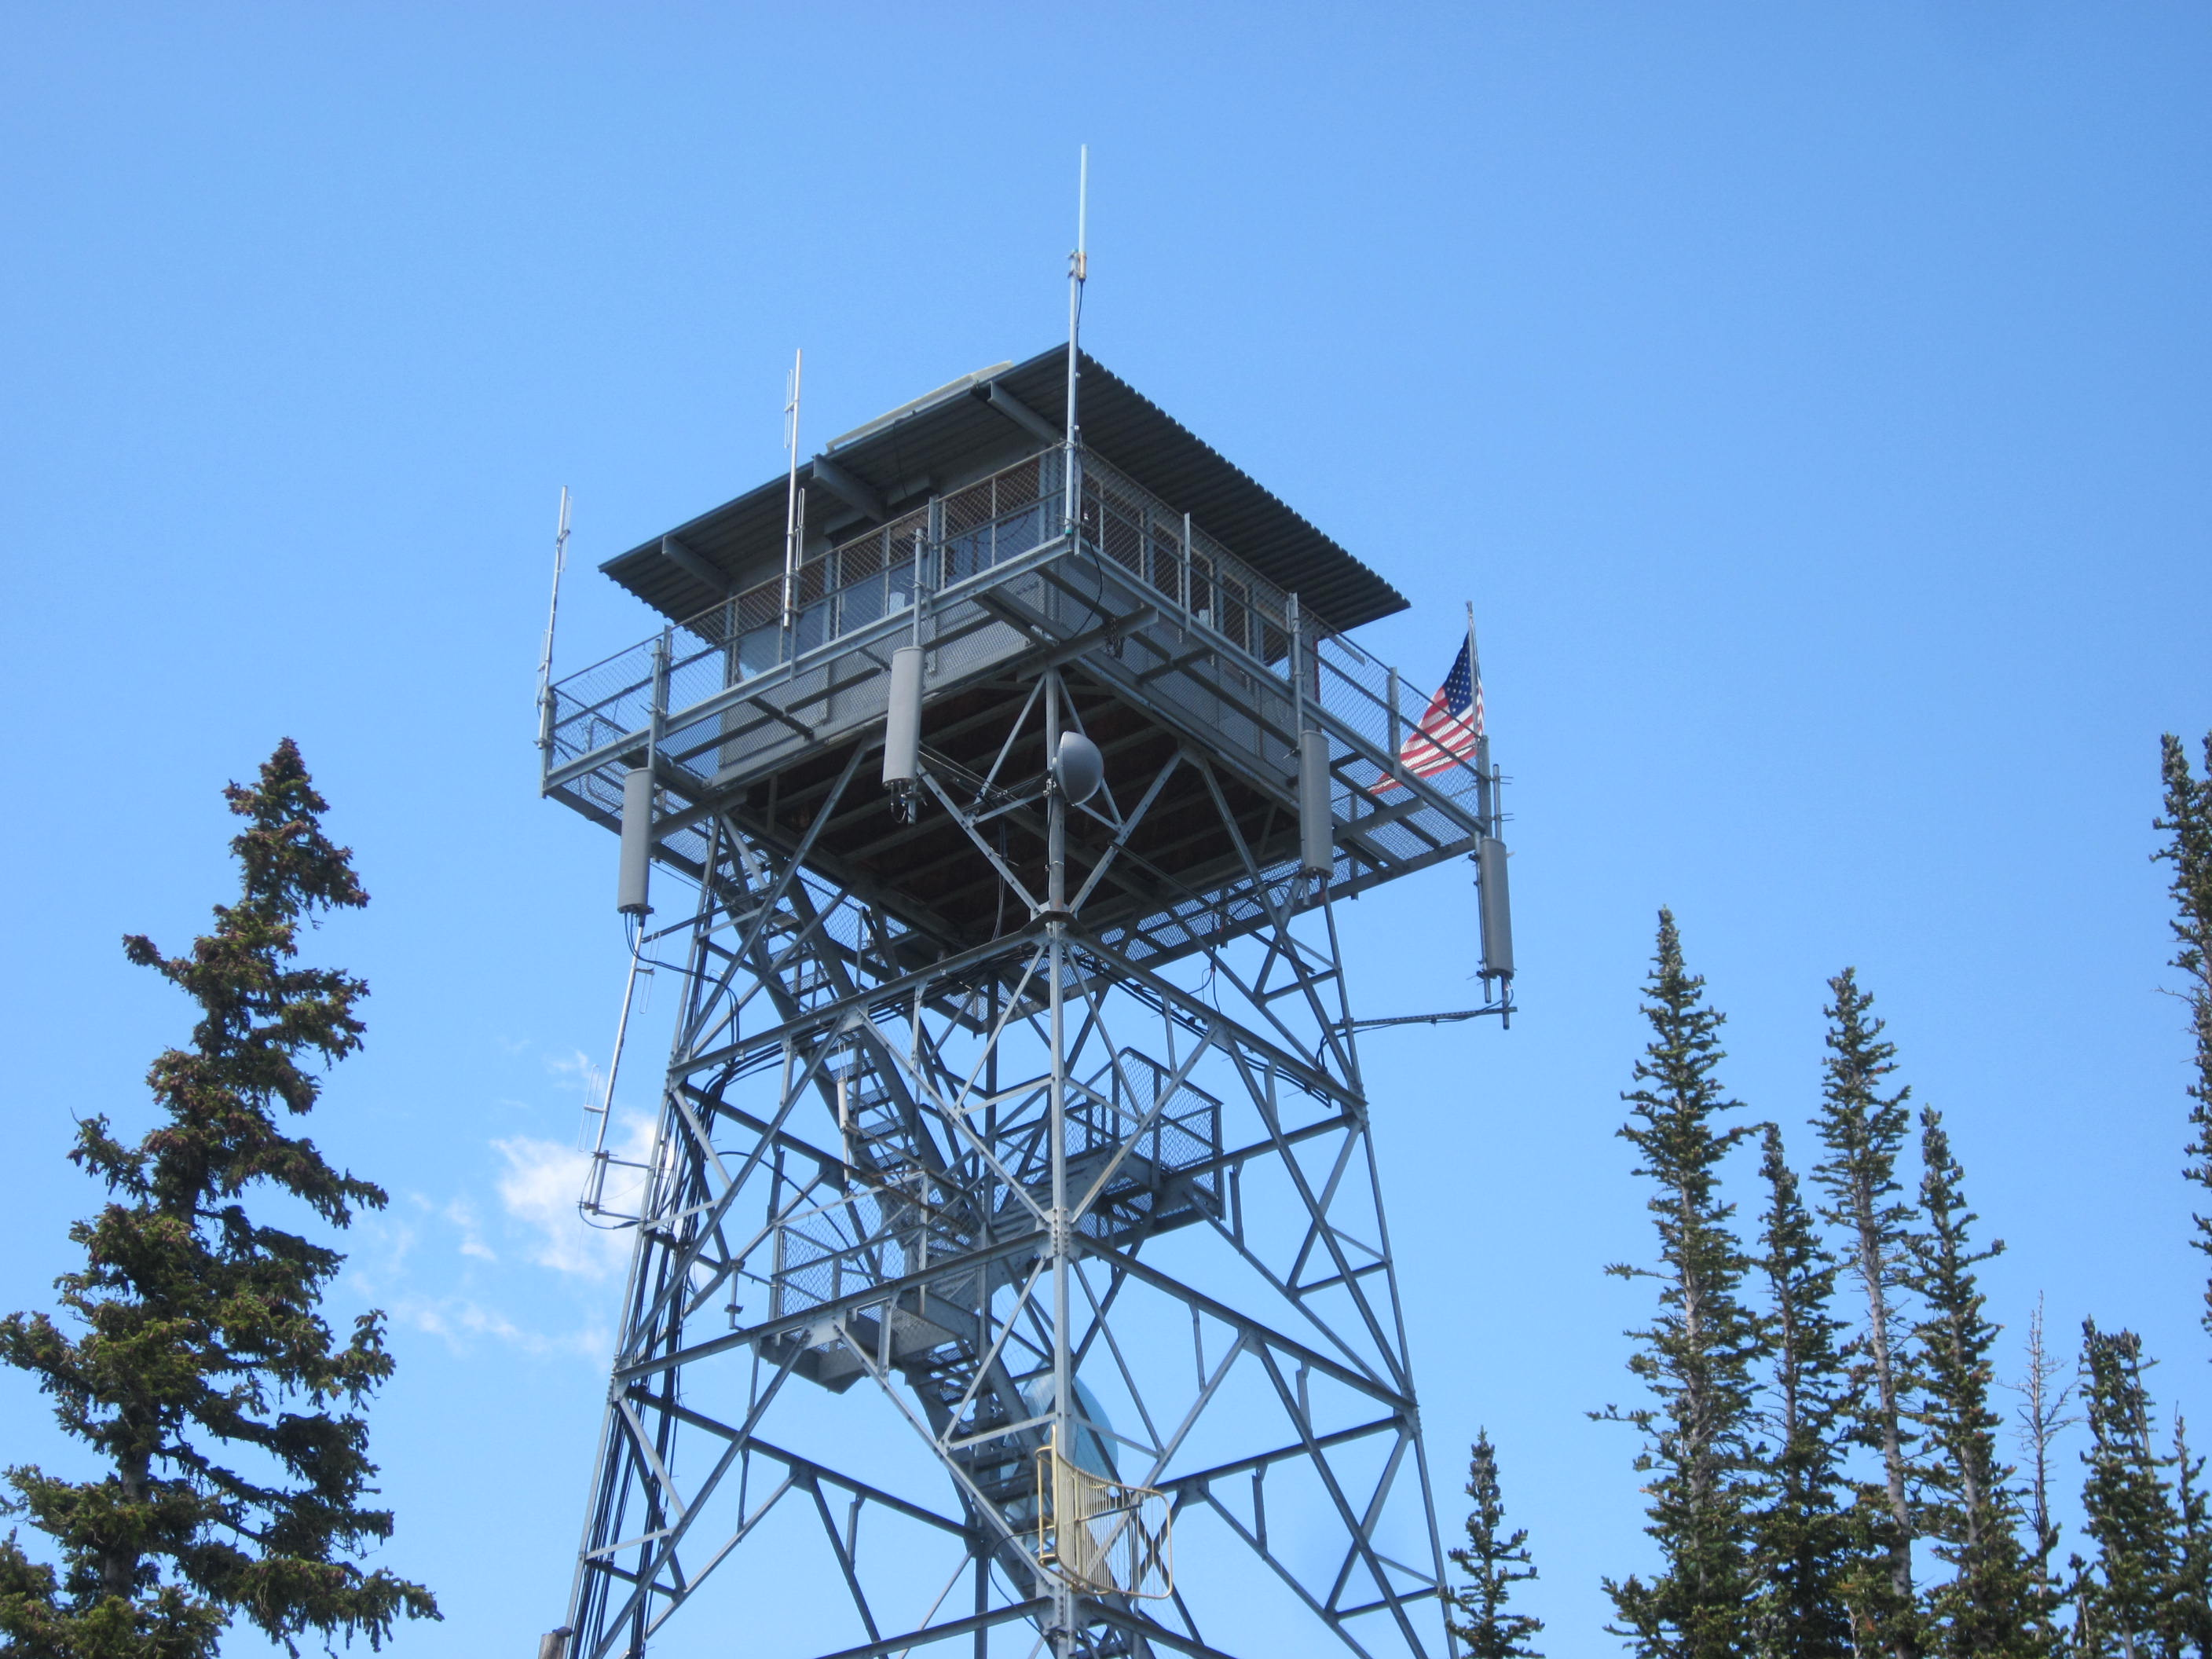 Gray metal framed lookout tower against a blue sky with pine trees on either side.